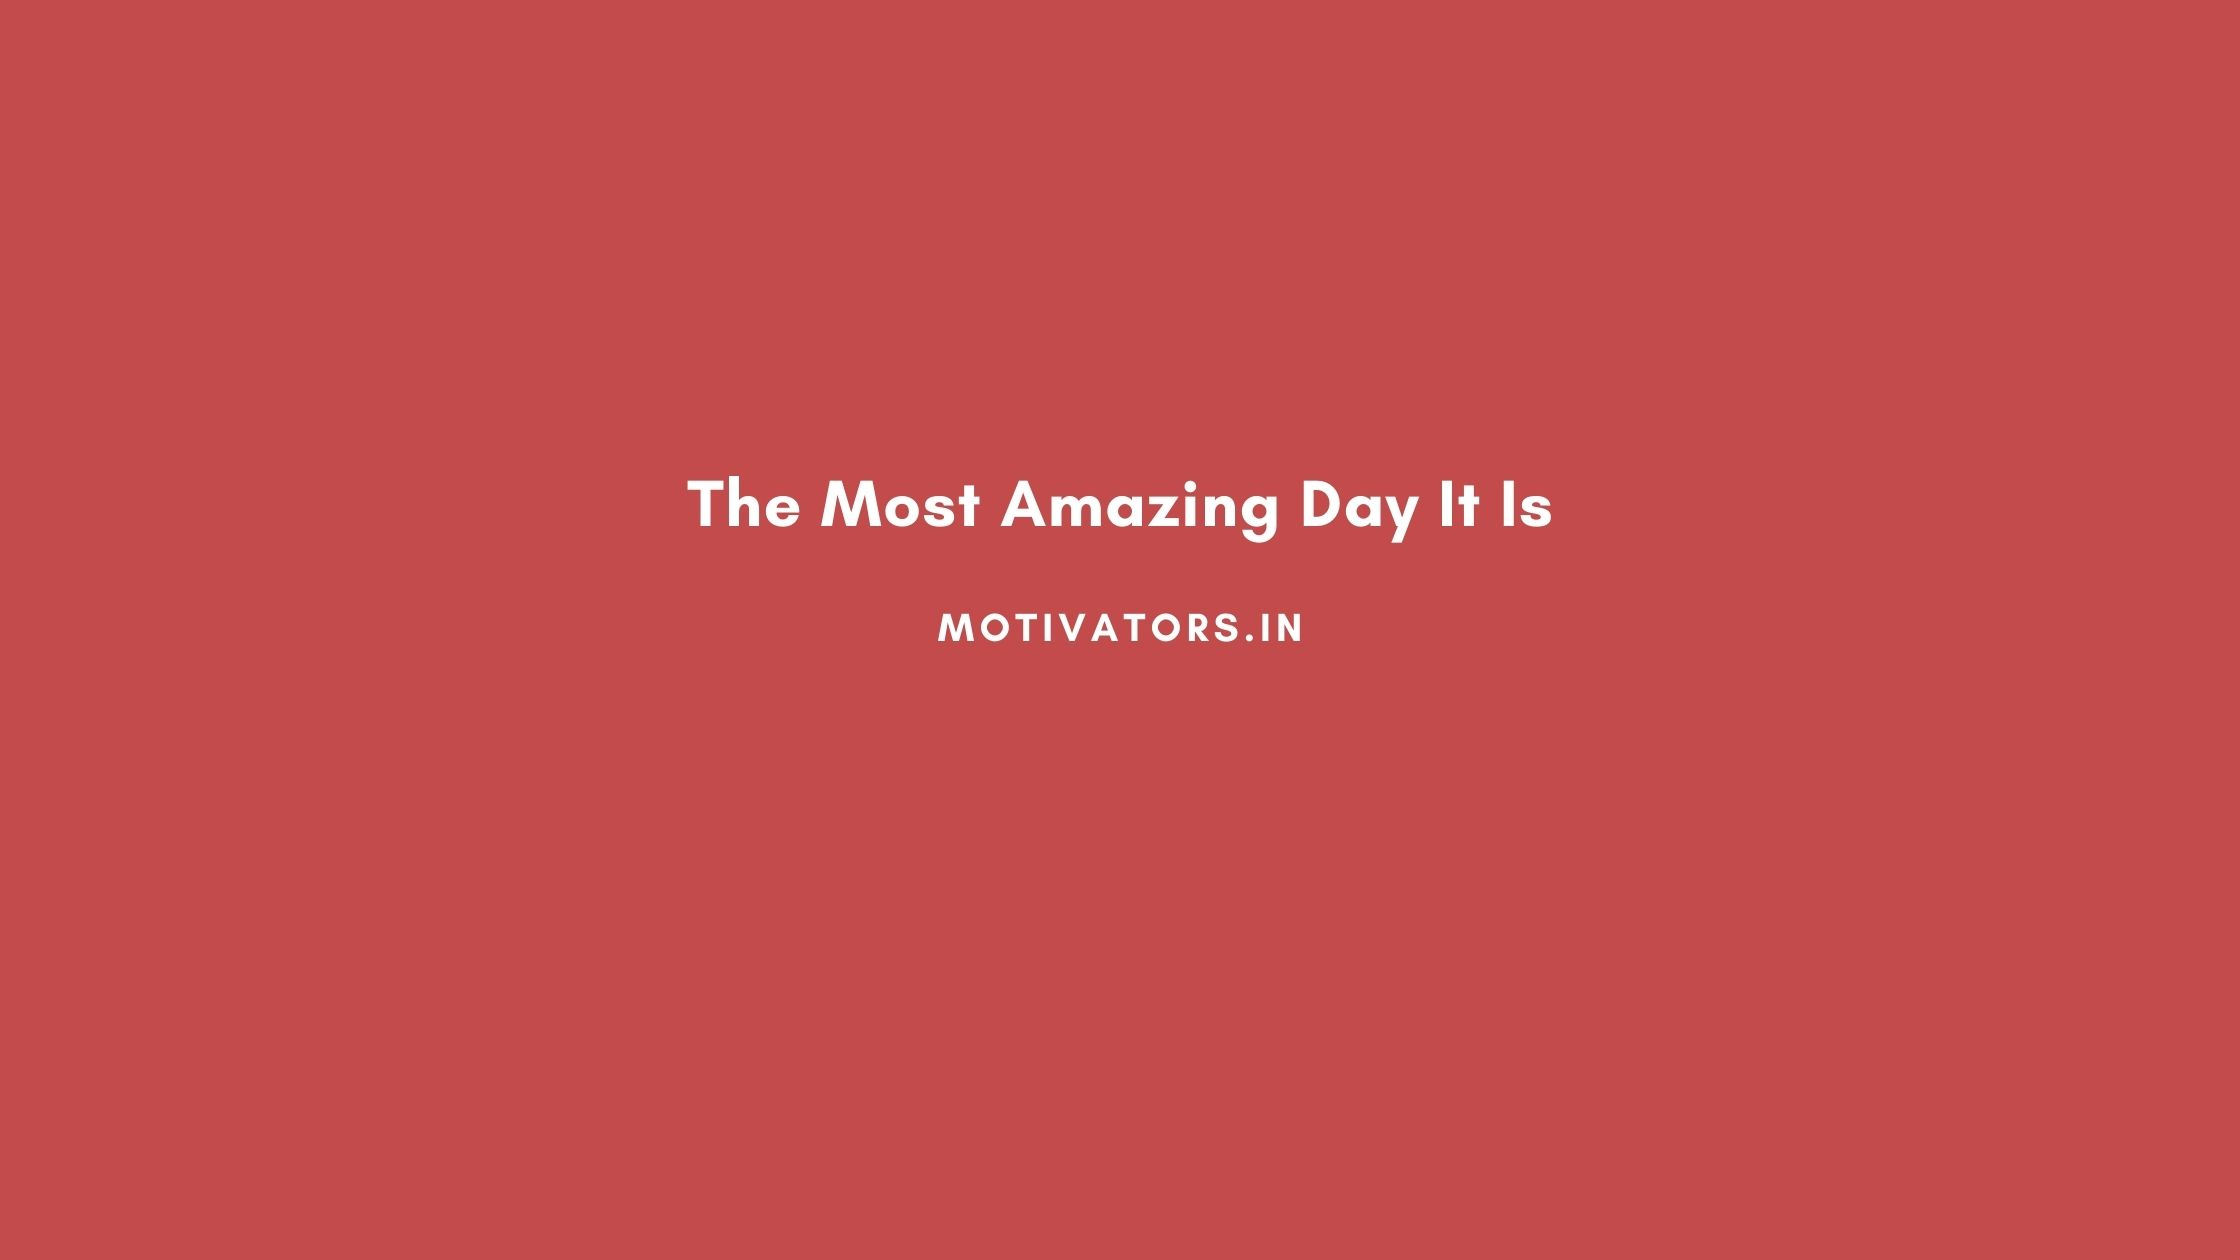 The Most Amazing Day It Is